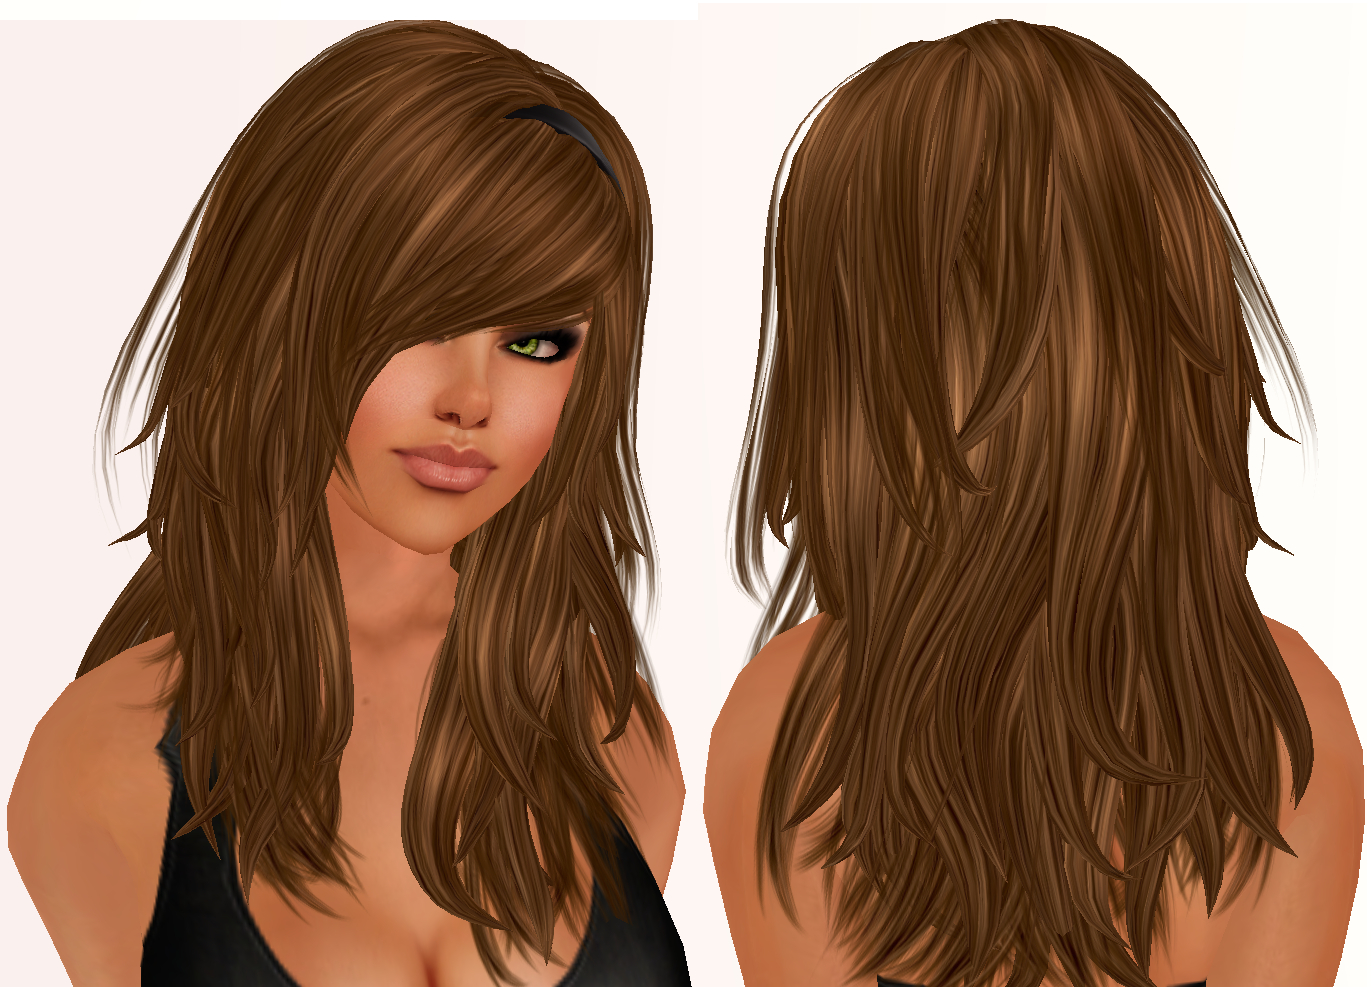 Short Hairstyles With Bangs And Layers – Hairstyle For Women & Man Regarding Short Haircuts With Bangs And Layers (View 21 of 25)